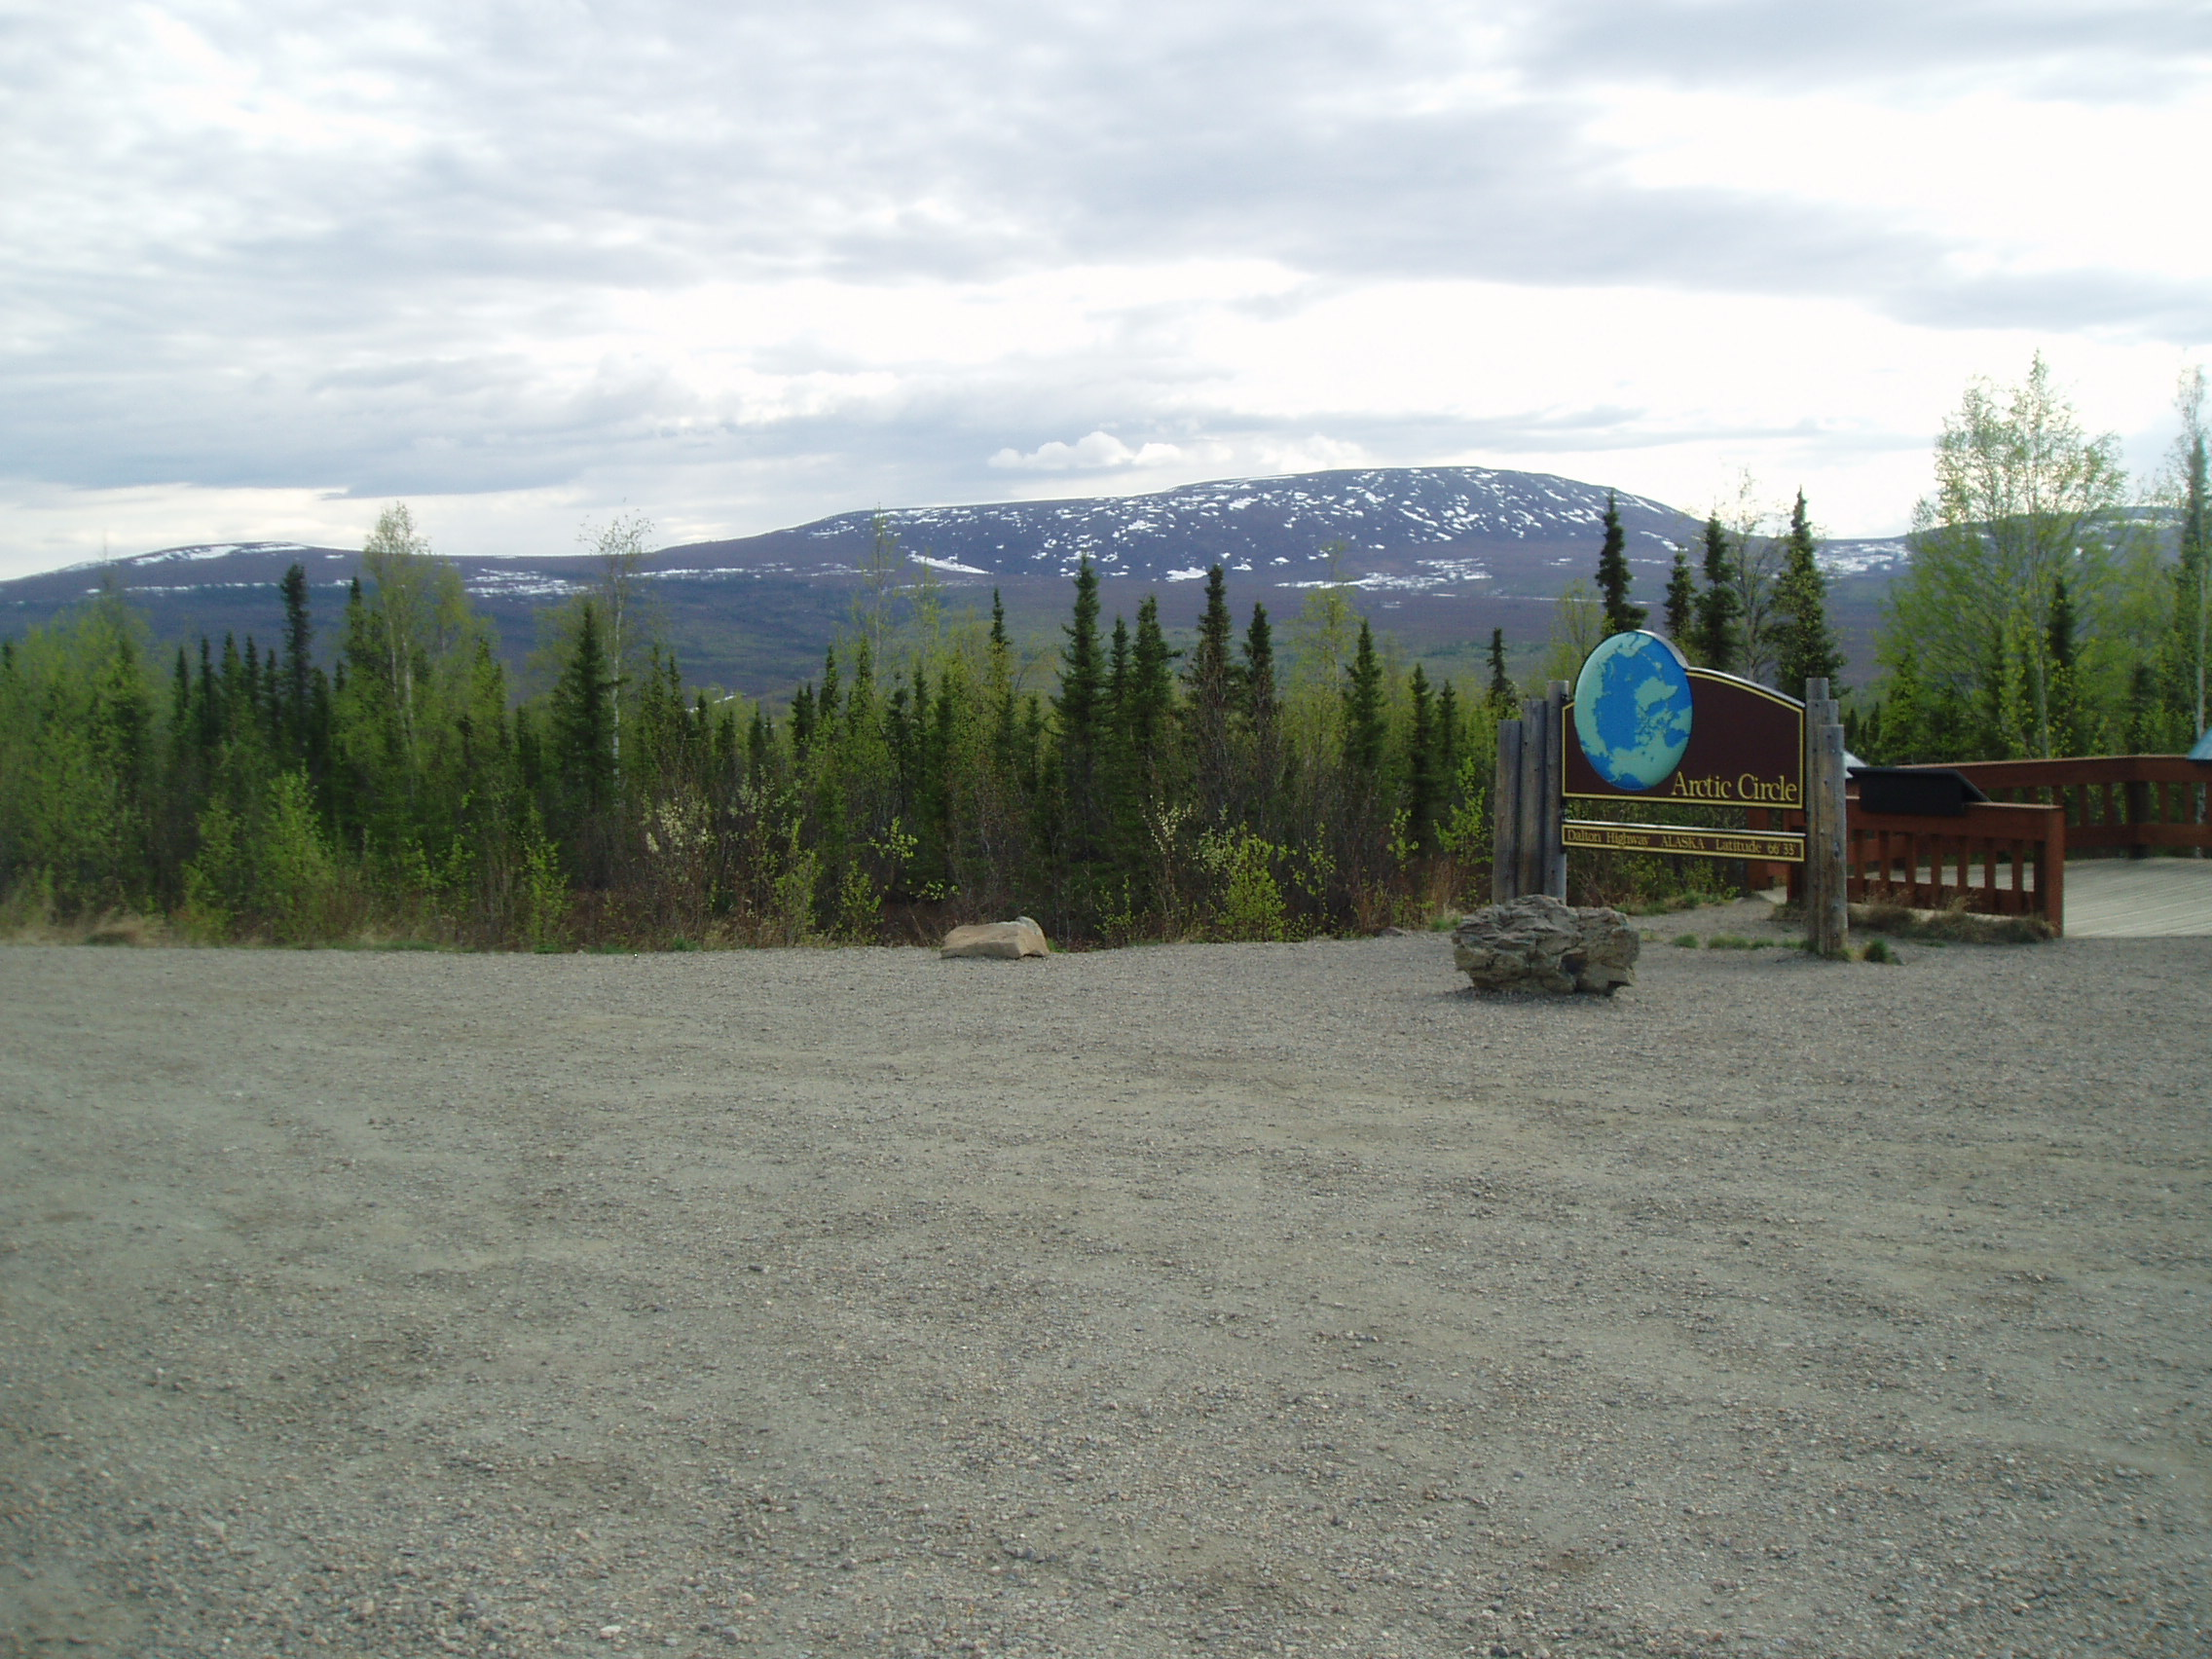 """Arctic Circle Overnight"" - We'll transport you to the Arctic Circle Wayside. Camp overnight. Arrive approx. 11:00 am. Depart the following day at approx. 5:00 pm."